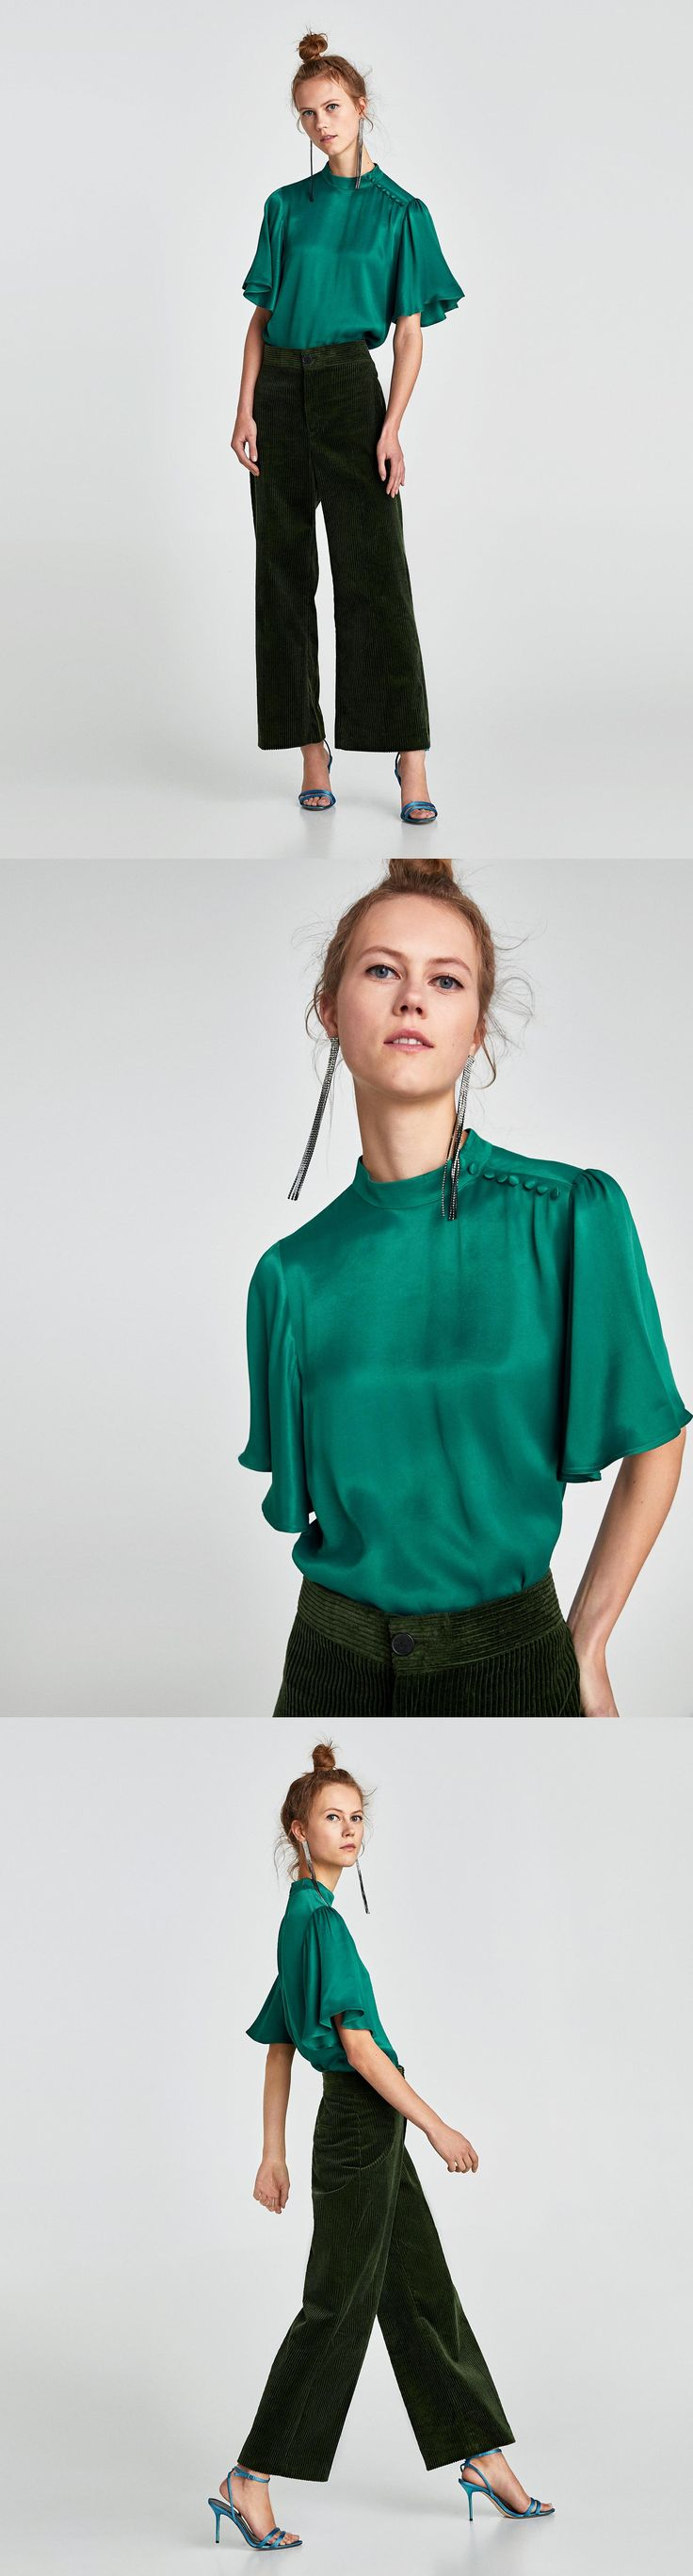 Blouse With Frilled Sleeves // 49.90 USD // Zara // Flowing blouse with a high collar, short full sleeves and lined buttons on the neck and shoulders. Fastens in the back with a zip hidden in the seam. HEIGHT OF MODEL: 178 CM / 5′ 10″